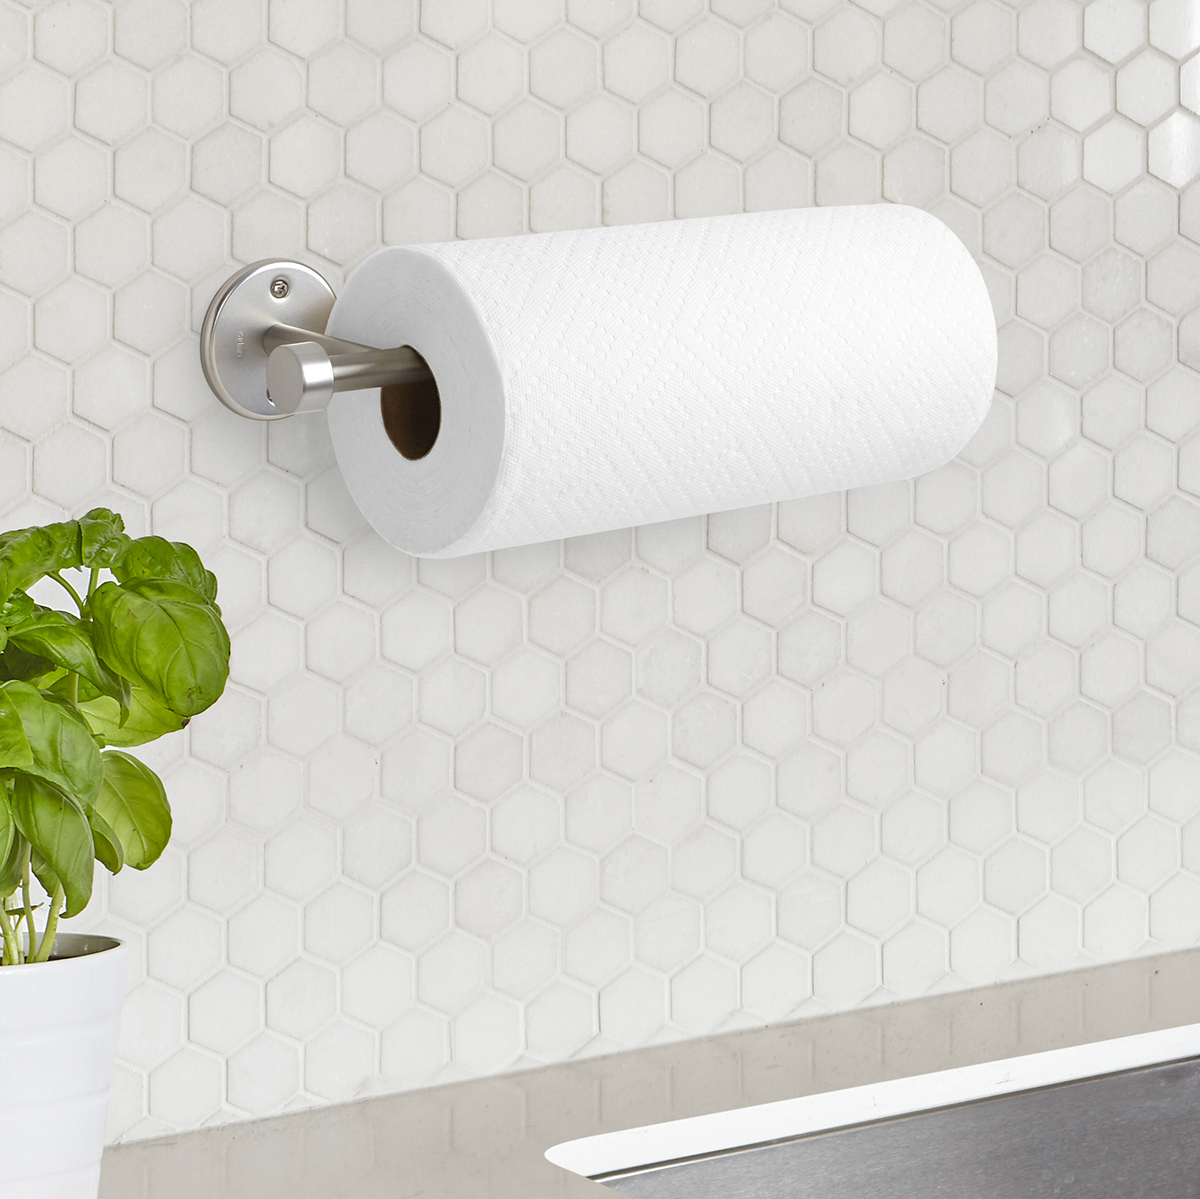 Umbra Ca Wall Mounted Paper Towel Holder